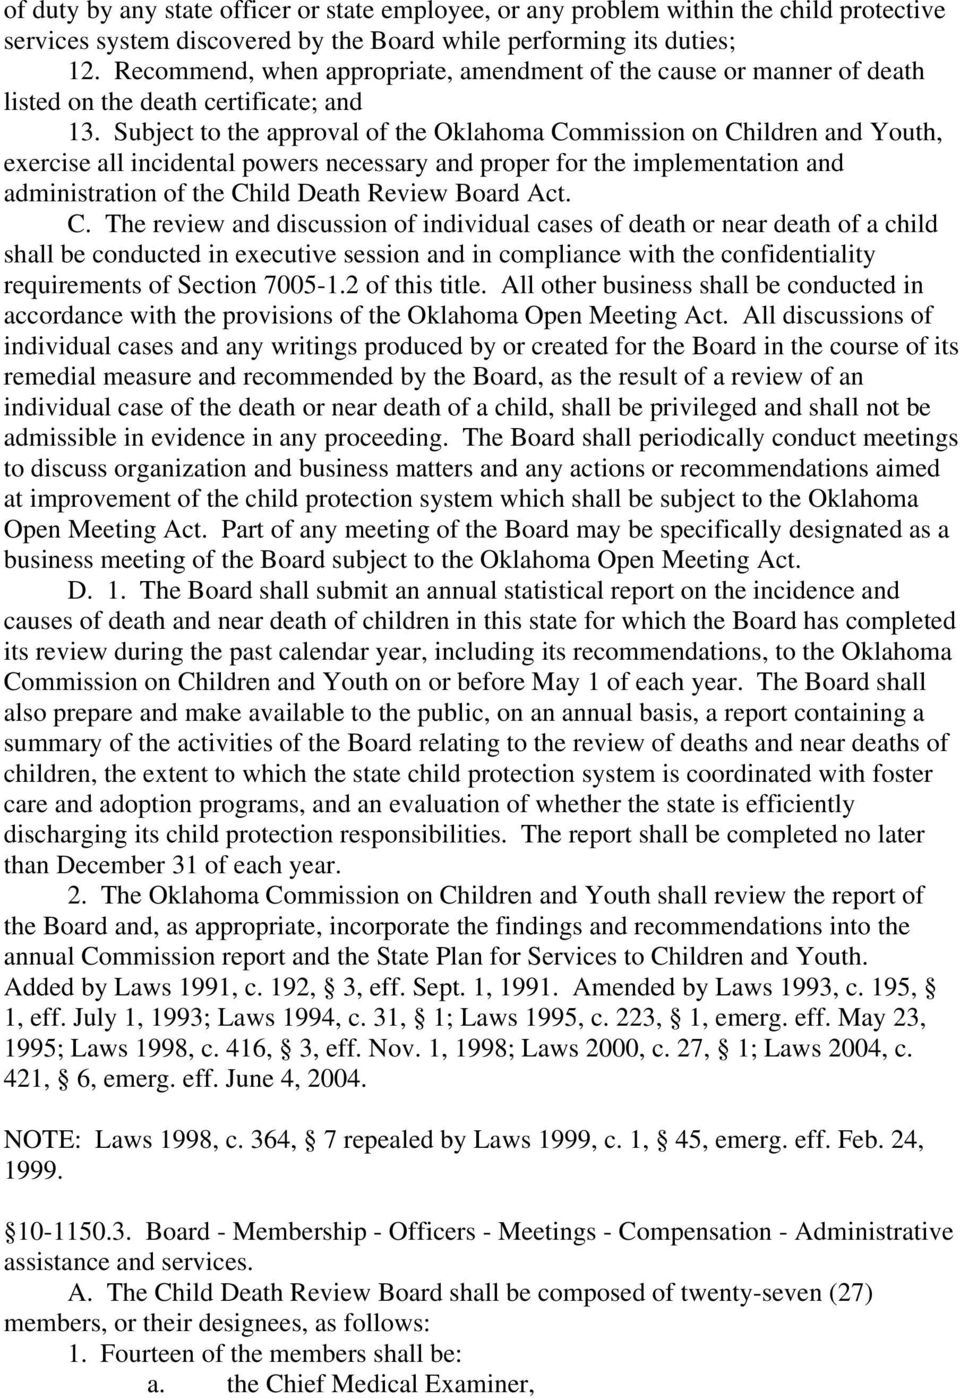 Subject to the approval of the Oklahoma Commission on Children and Youth, exercise all incidental powers necessary and proper for the implementation and administration of the Child Death Review Board